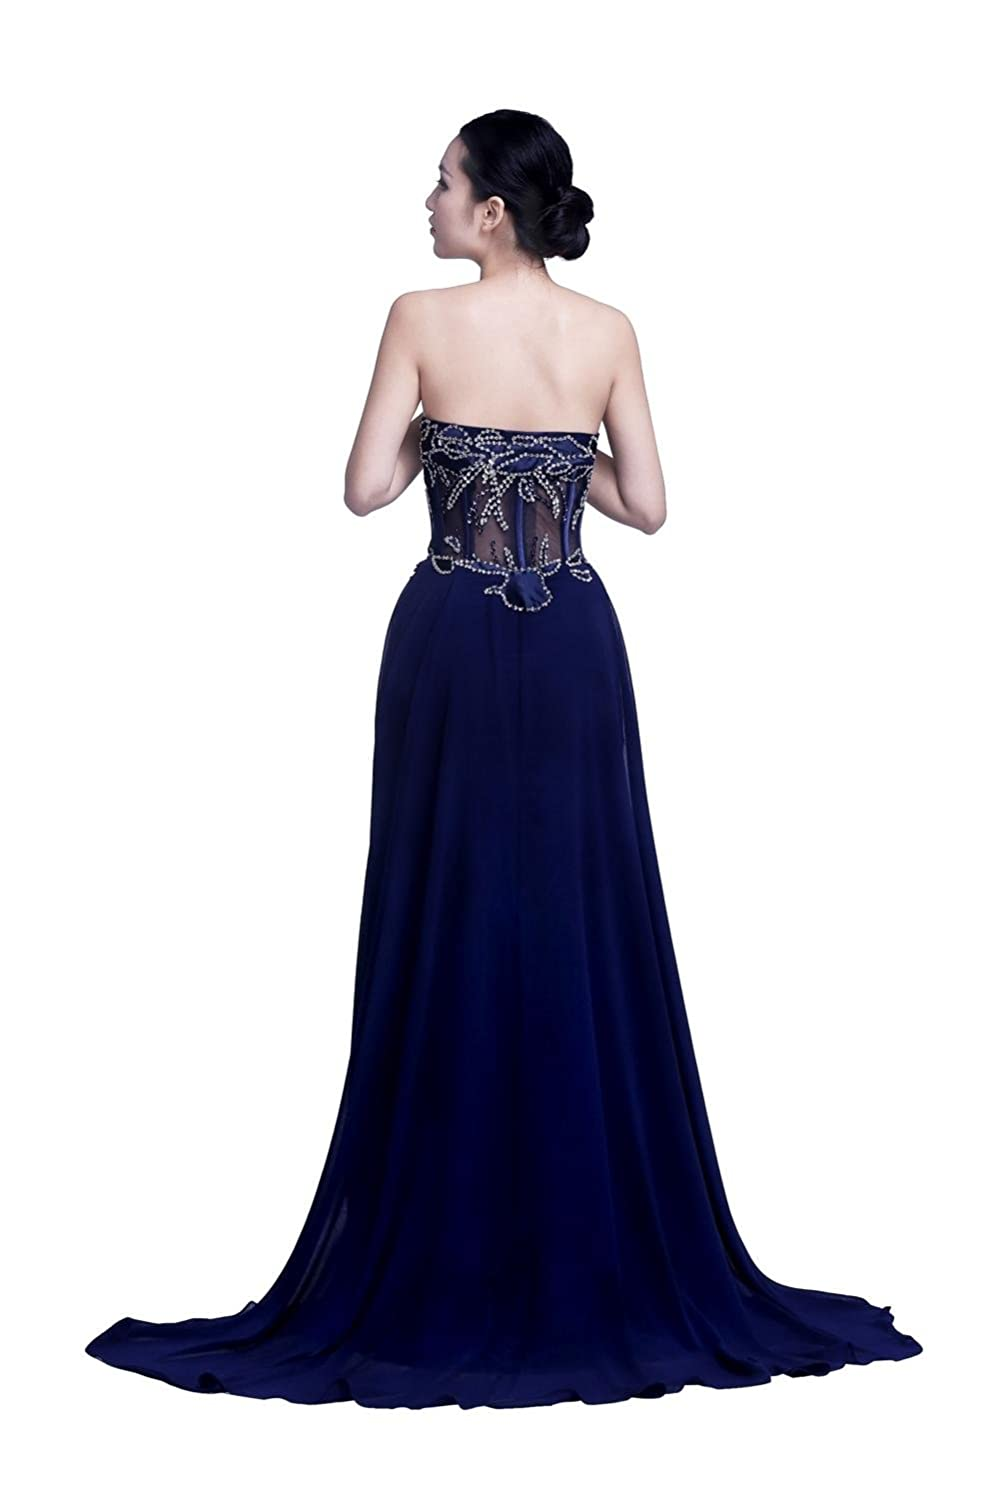 YiYaDawn Women's Long Evening Ball Gown Formal Dress with Side Split